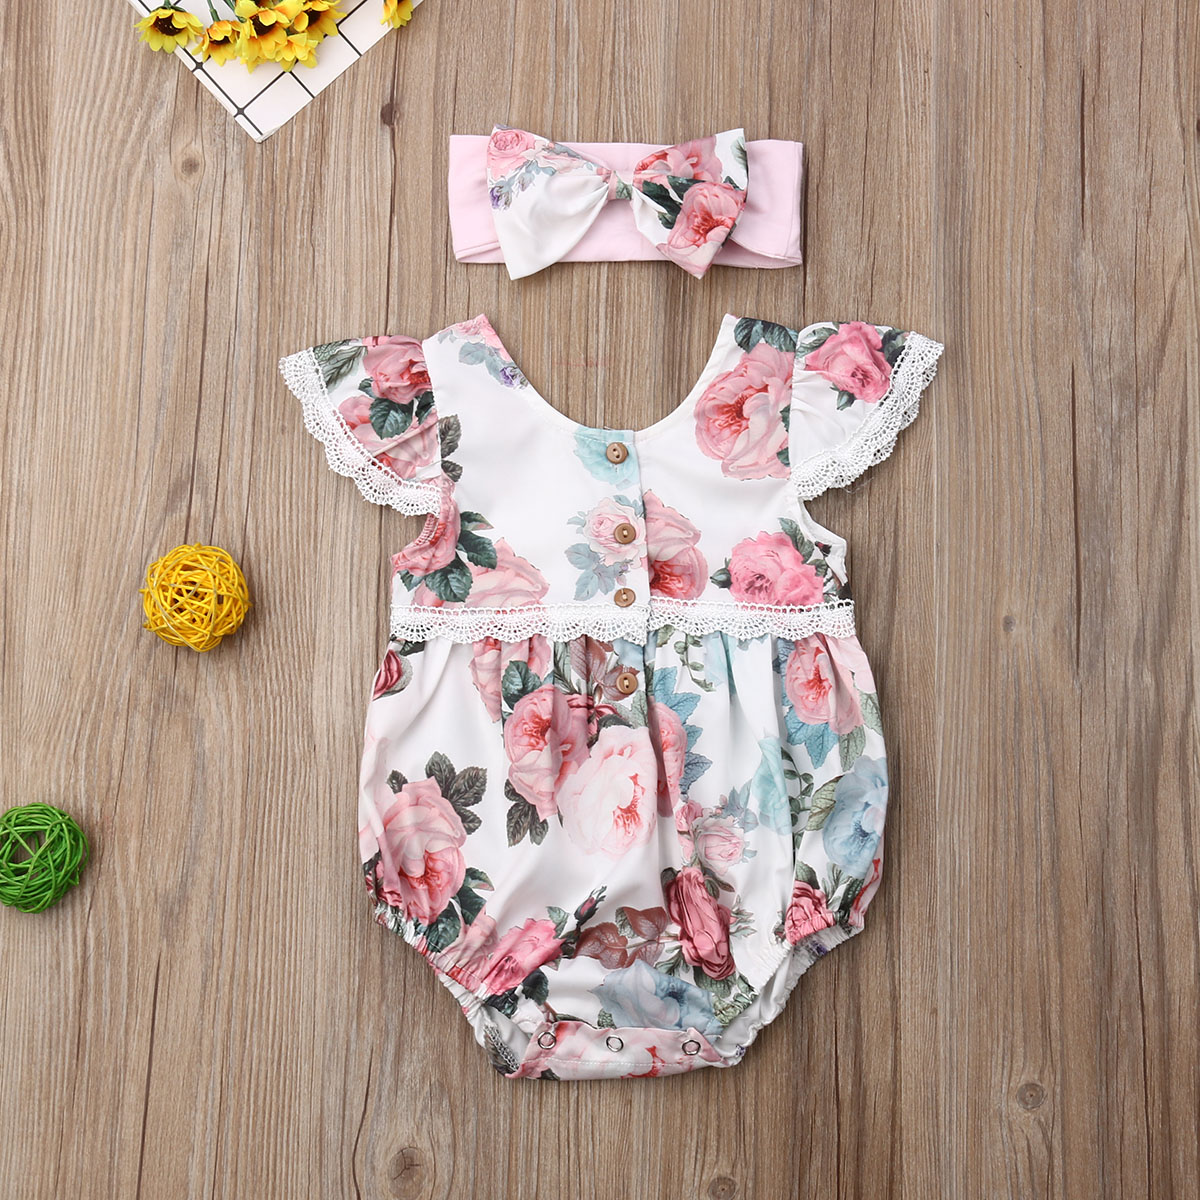 Pudcoco Newborn Baby Girl Clothes Flower Print Fly Sleeve Lace Ruffle Romper Bowknot Headband 2Pcs Outfits Cotton Clothes